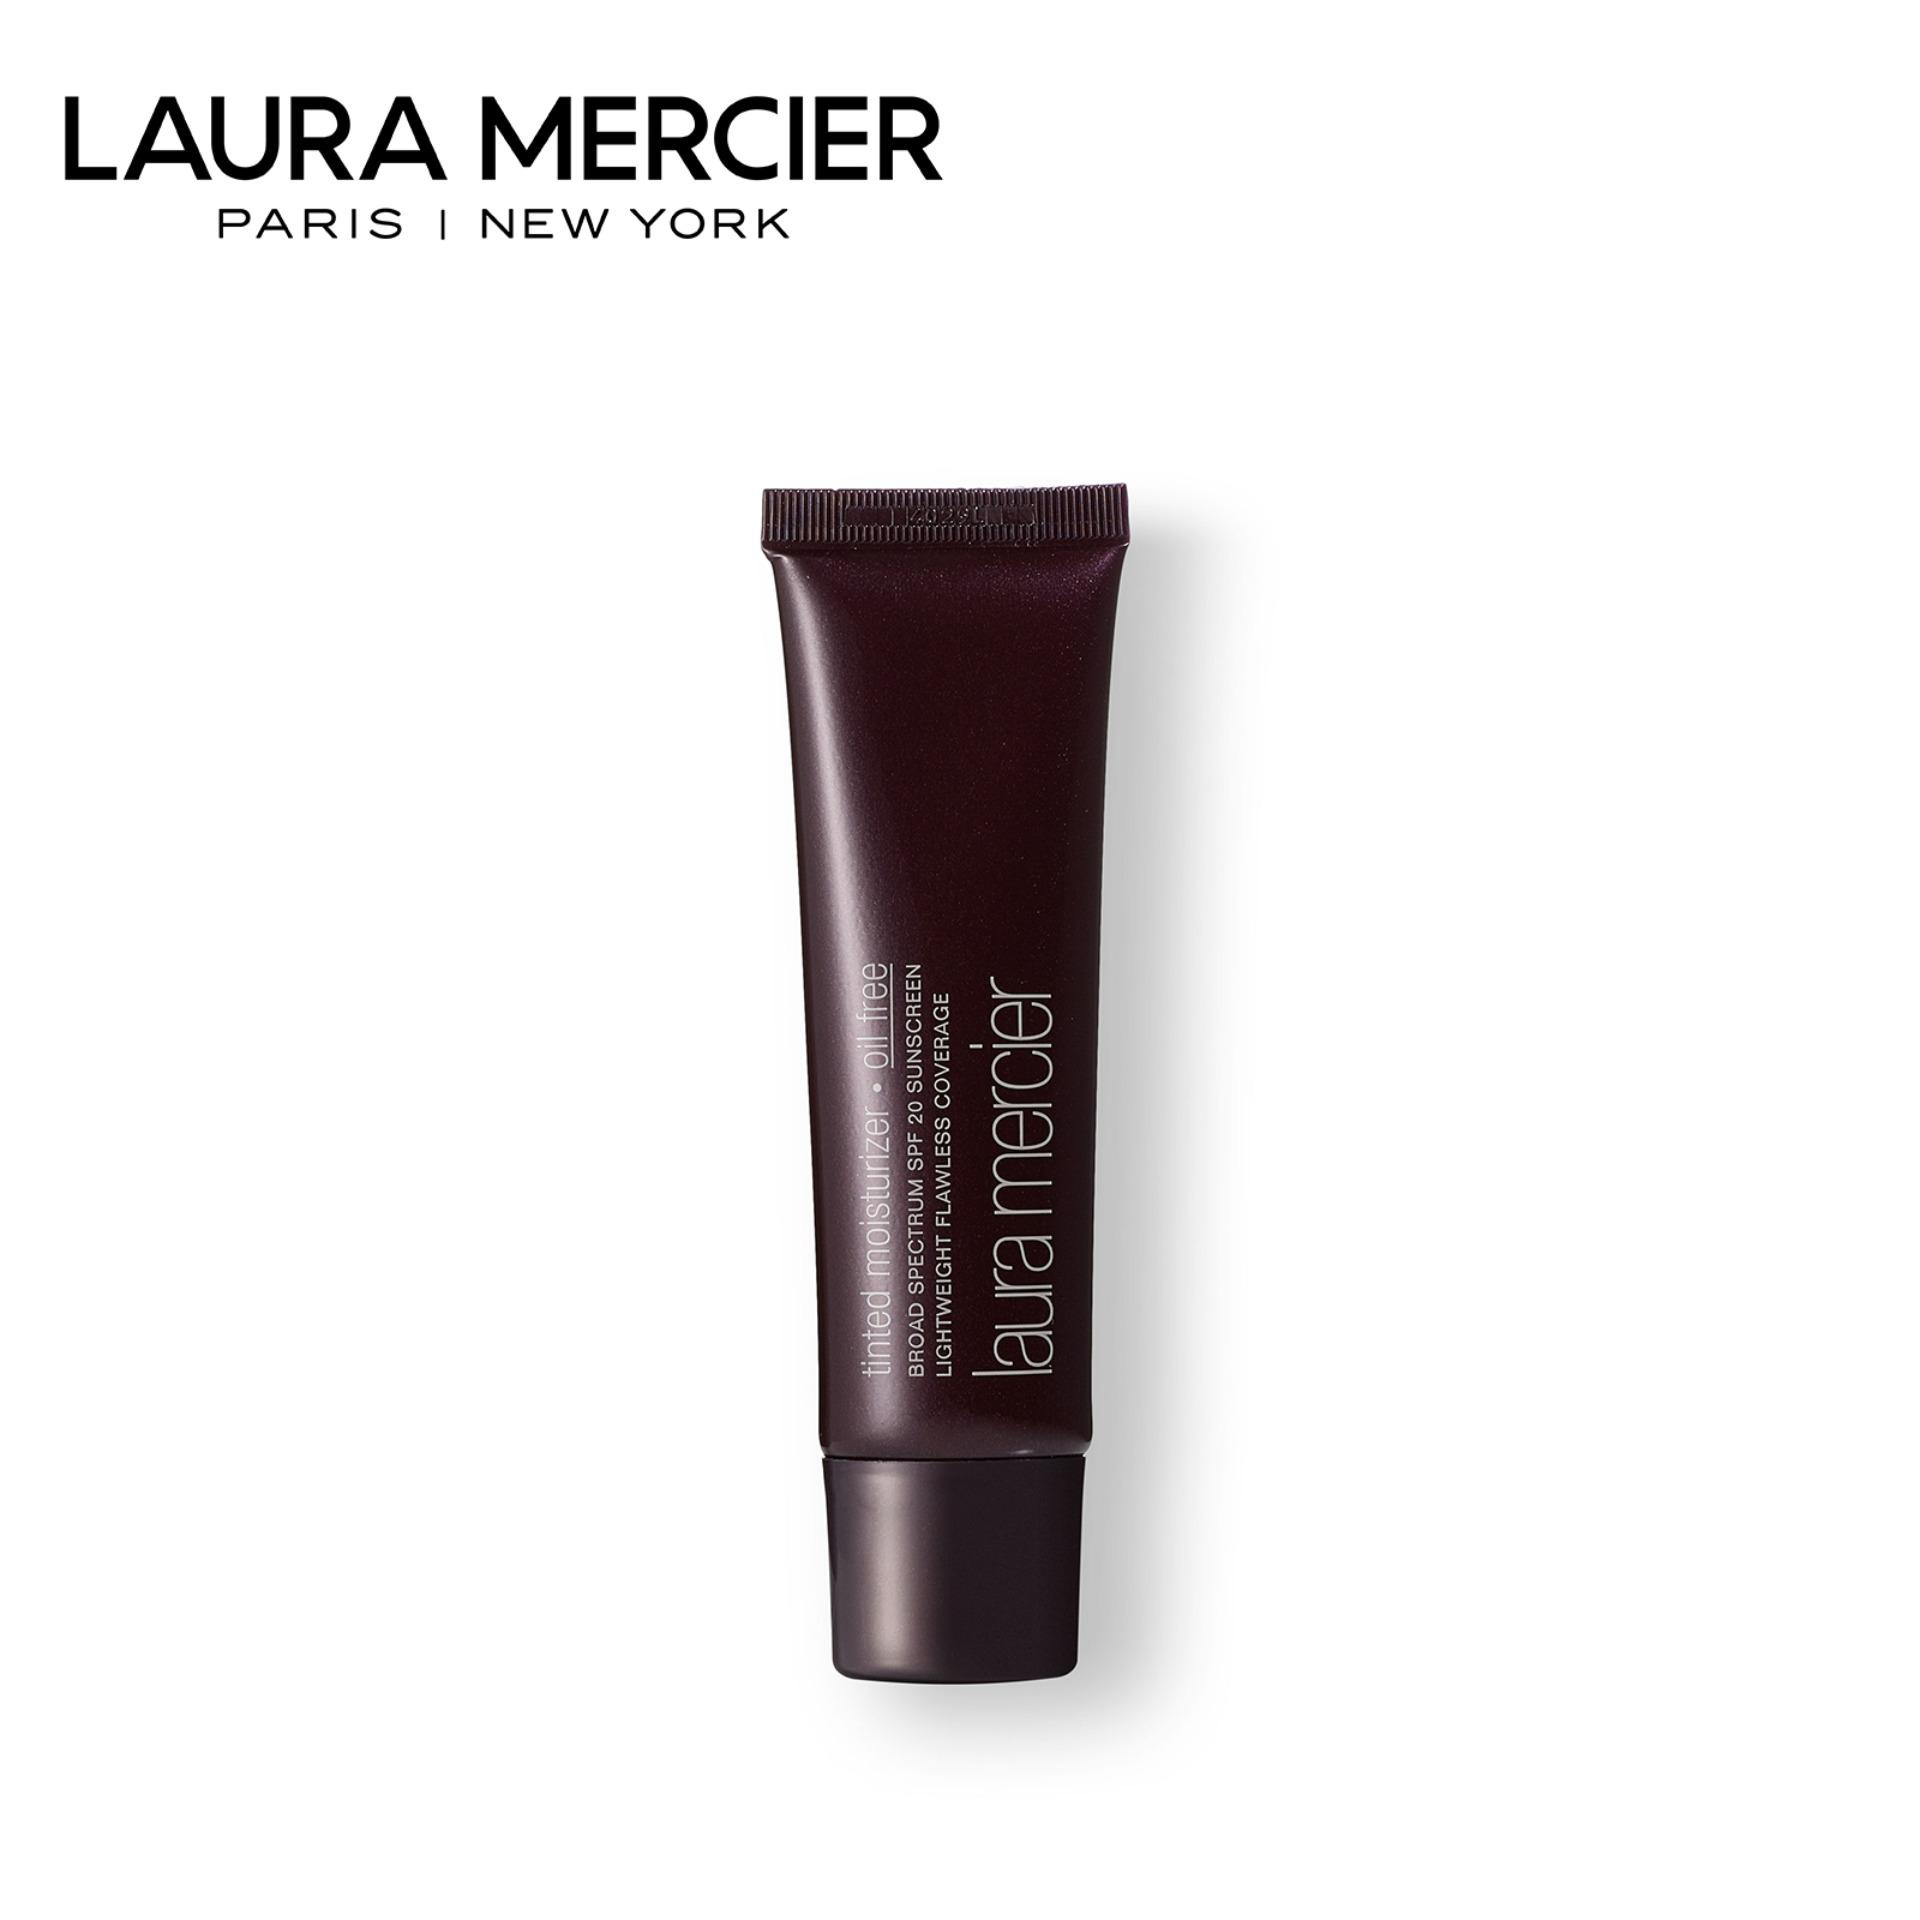 Laura Mercier Tinted Moisturizer - Oil Free Broad Spectrum Spf 20 Sunscreen 50ml By Laura Mercier Official Store.